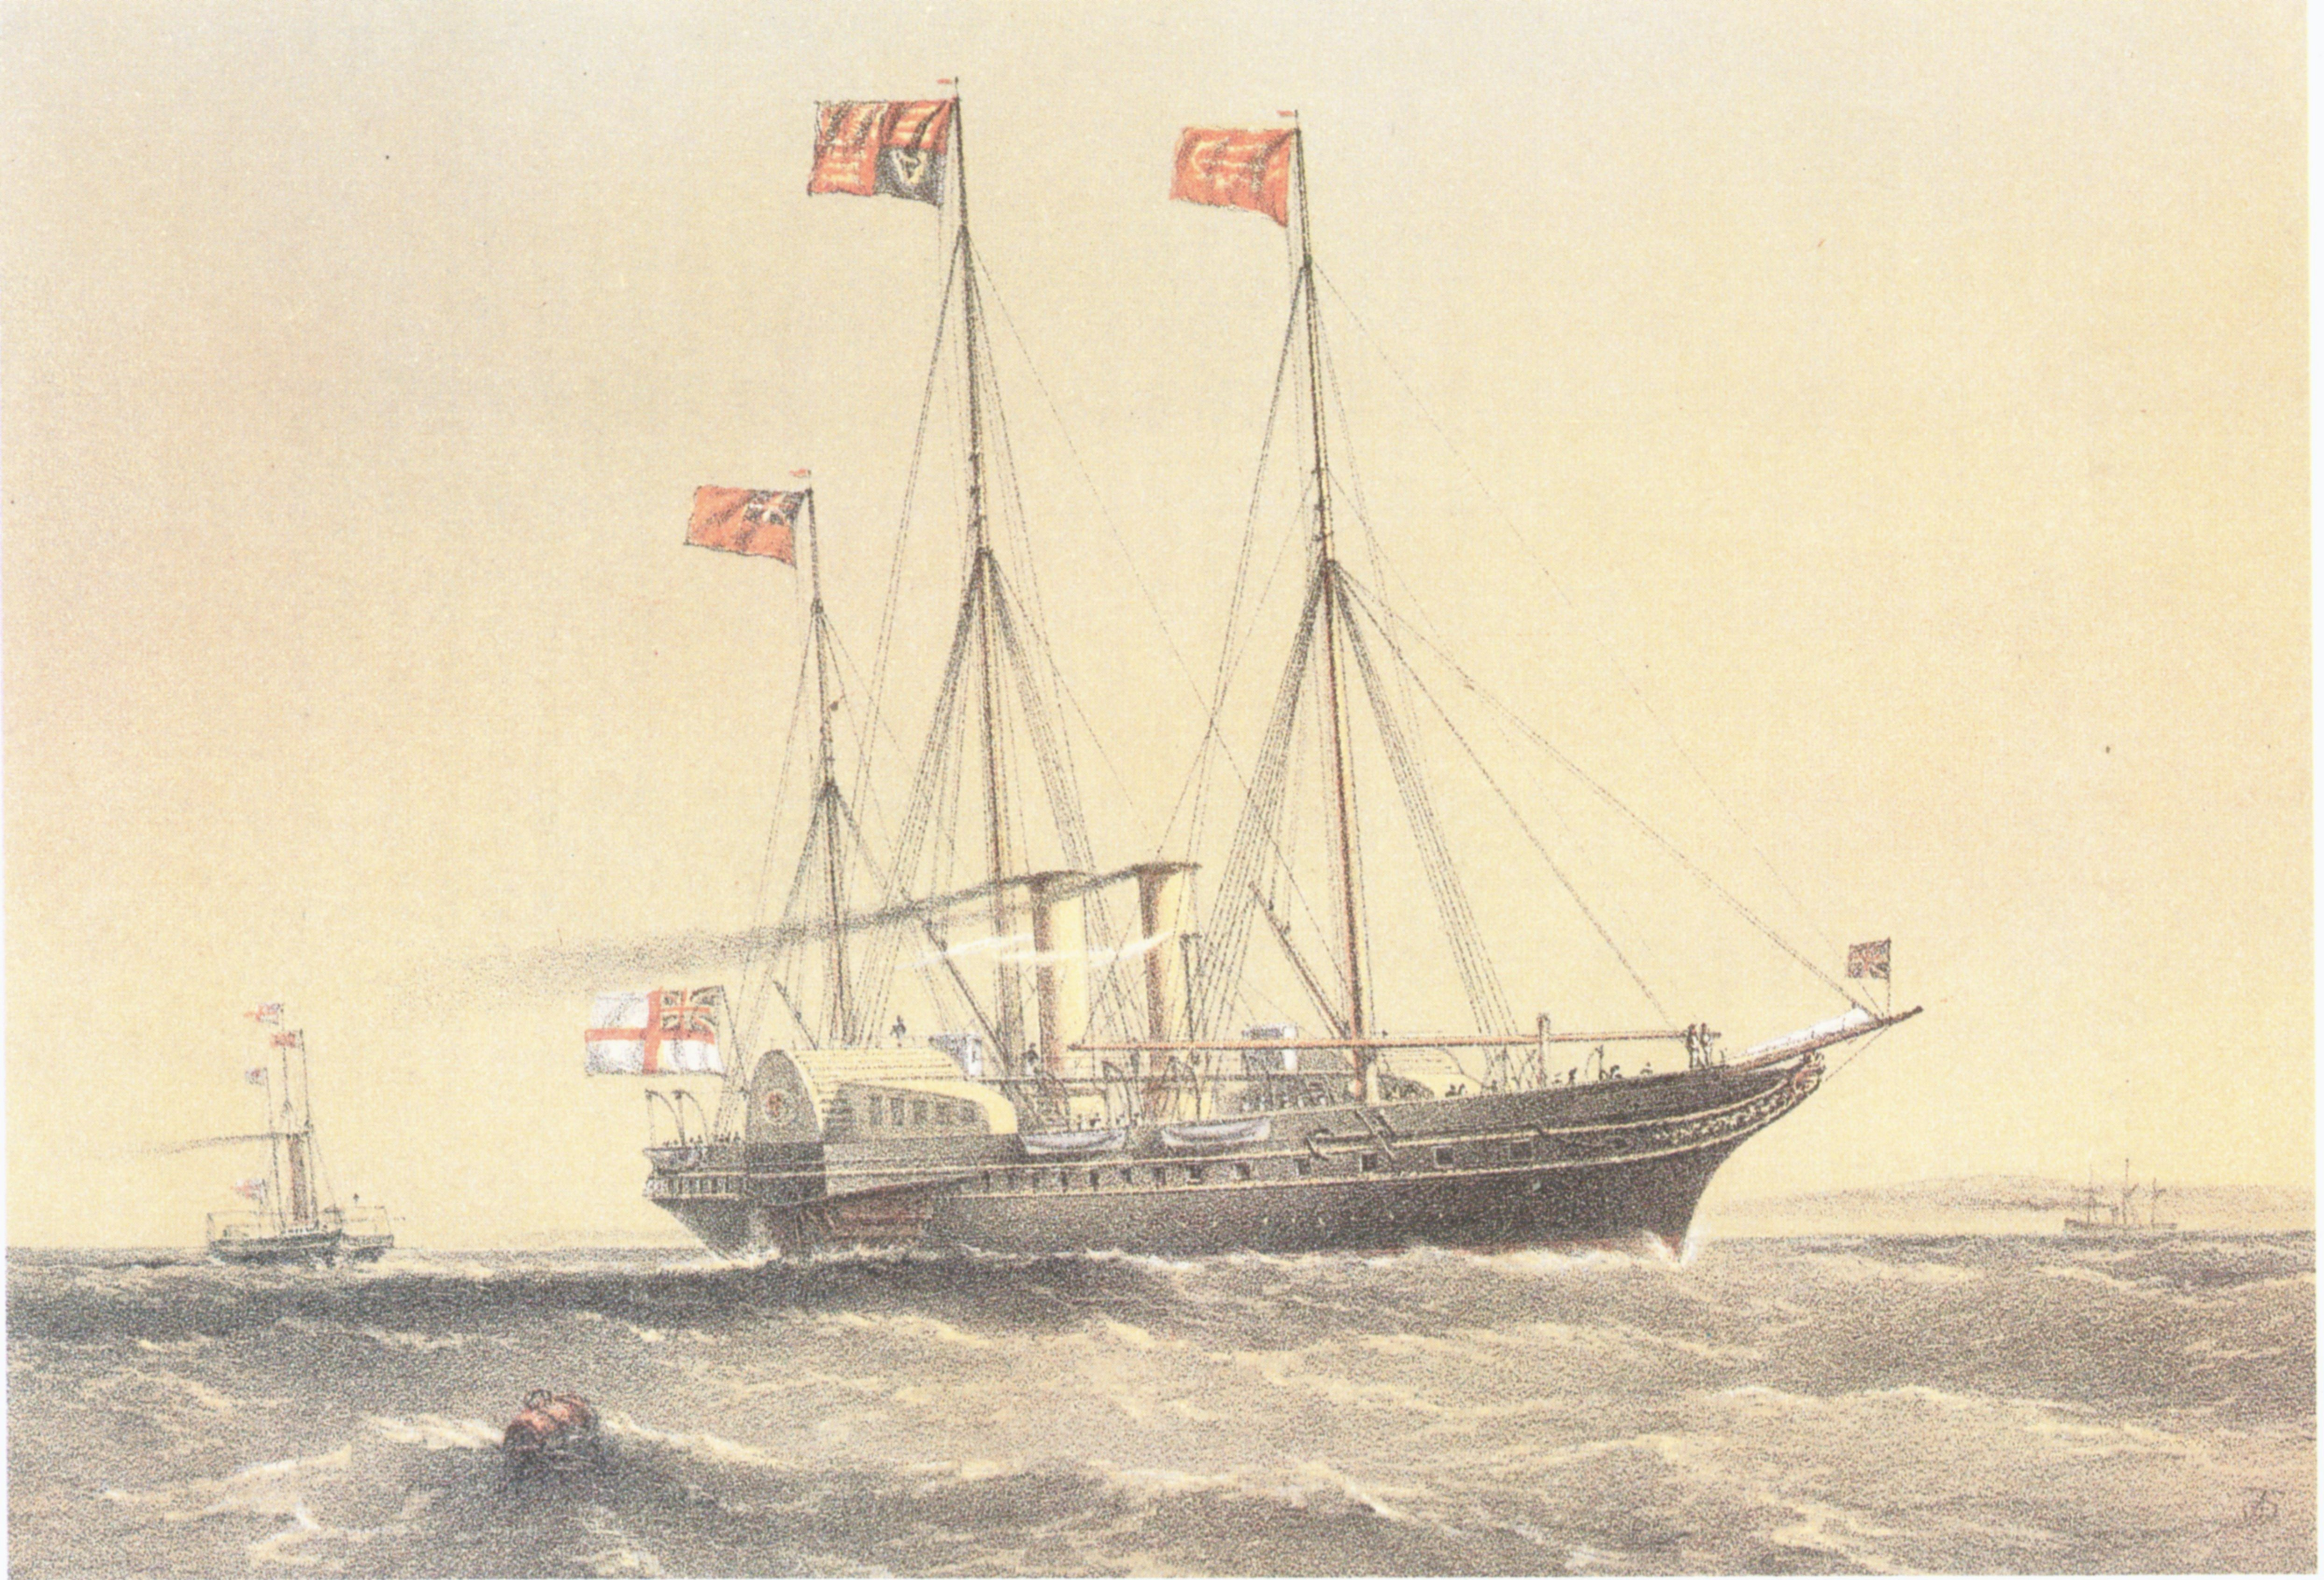 A painting of HMY Victoria and Albert II by William Frederick Mitchell